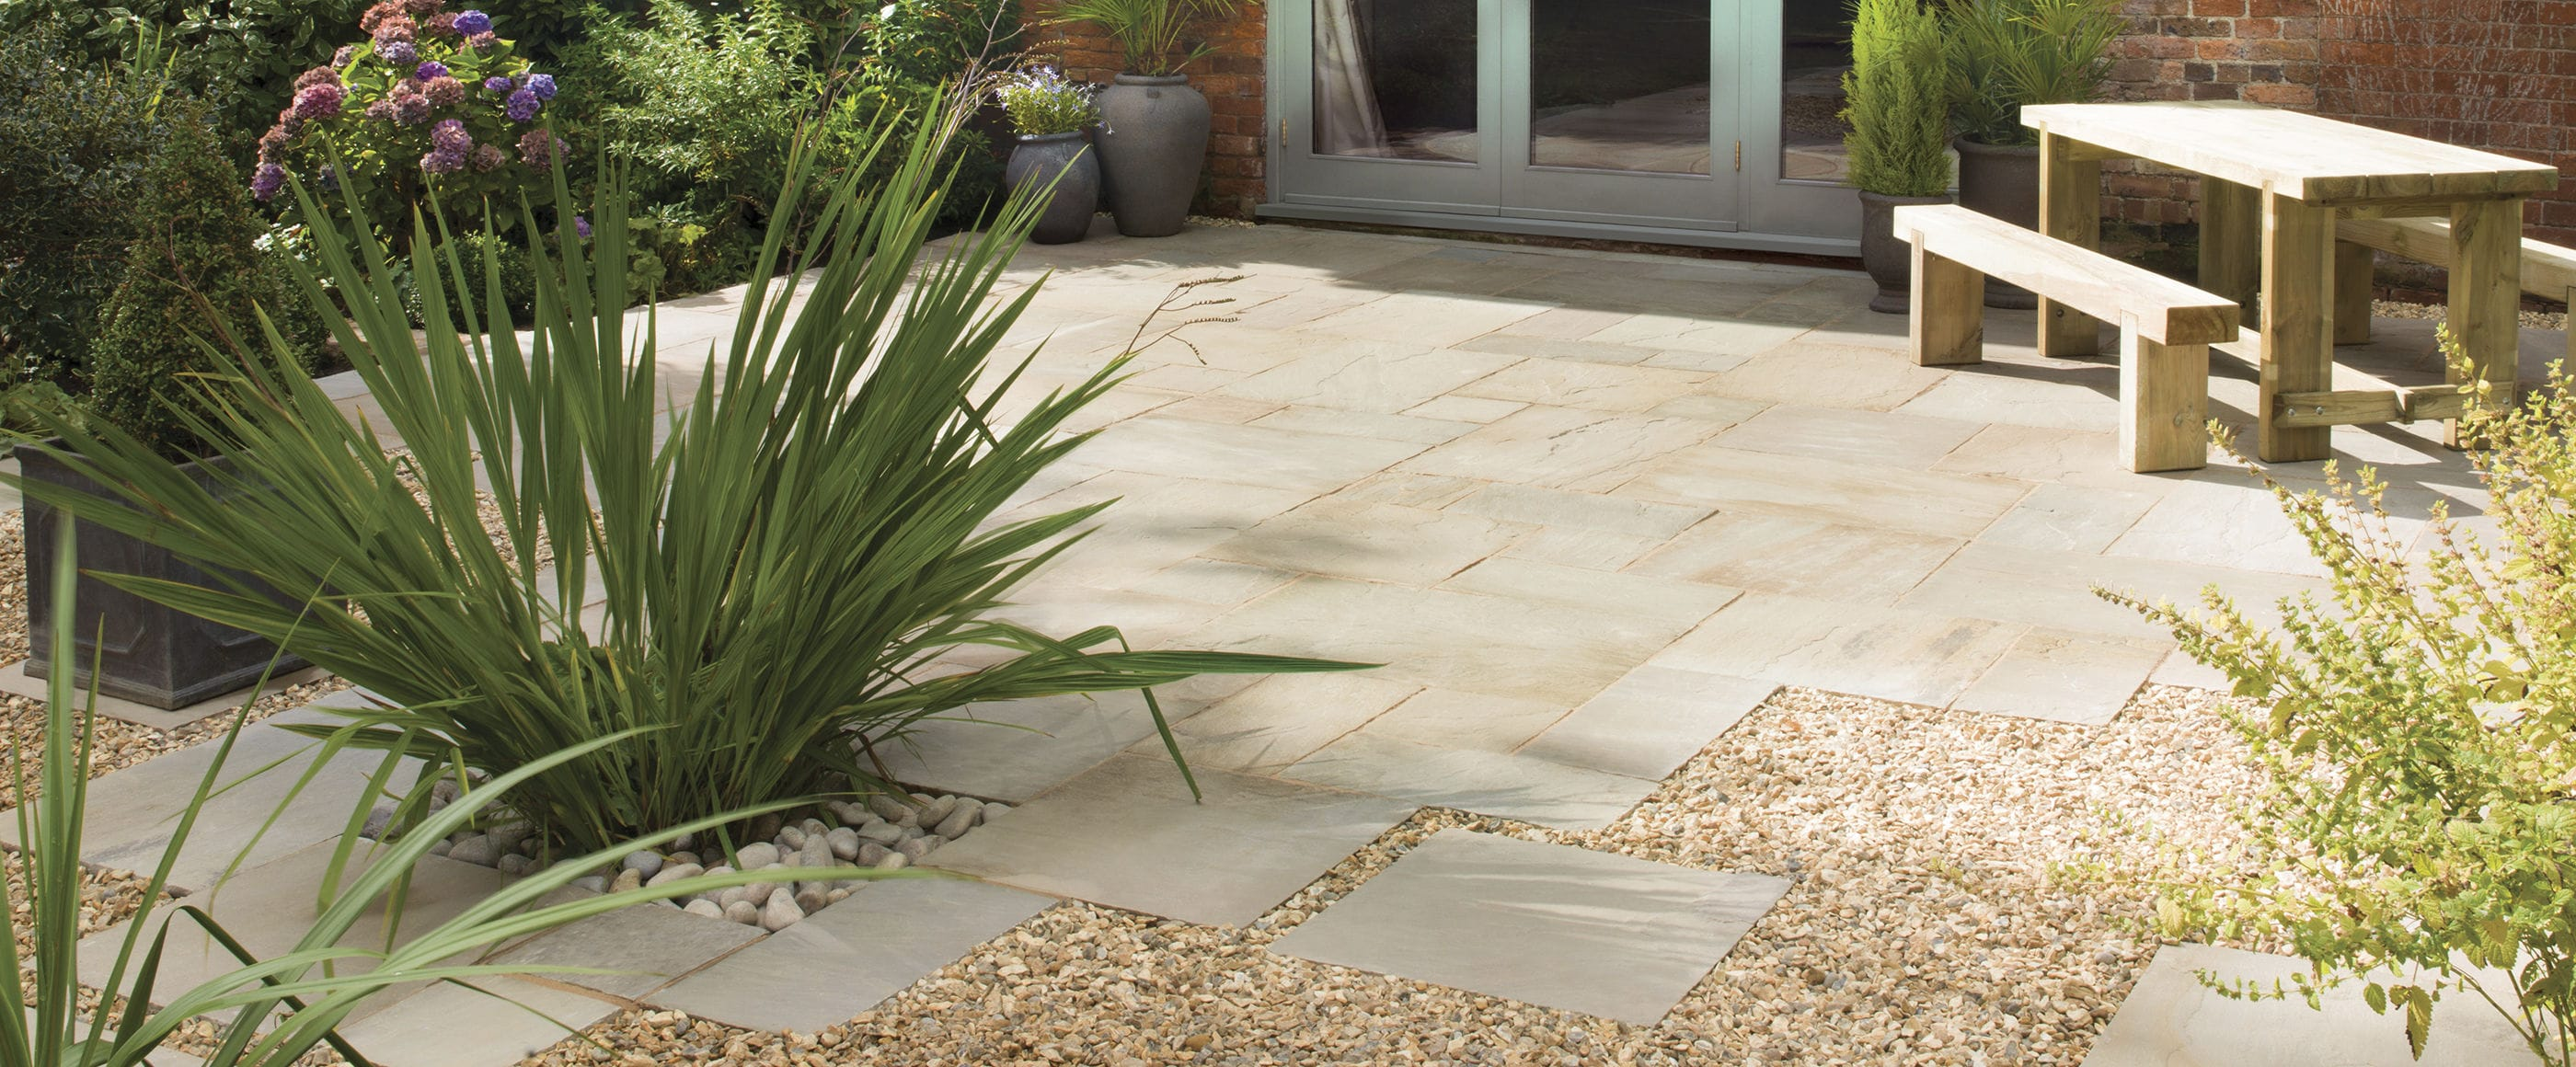 Natural Stone Paving Slab Textured For Public Spaces Outdoor